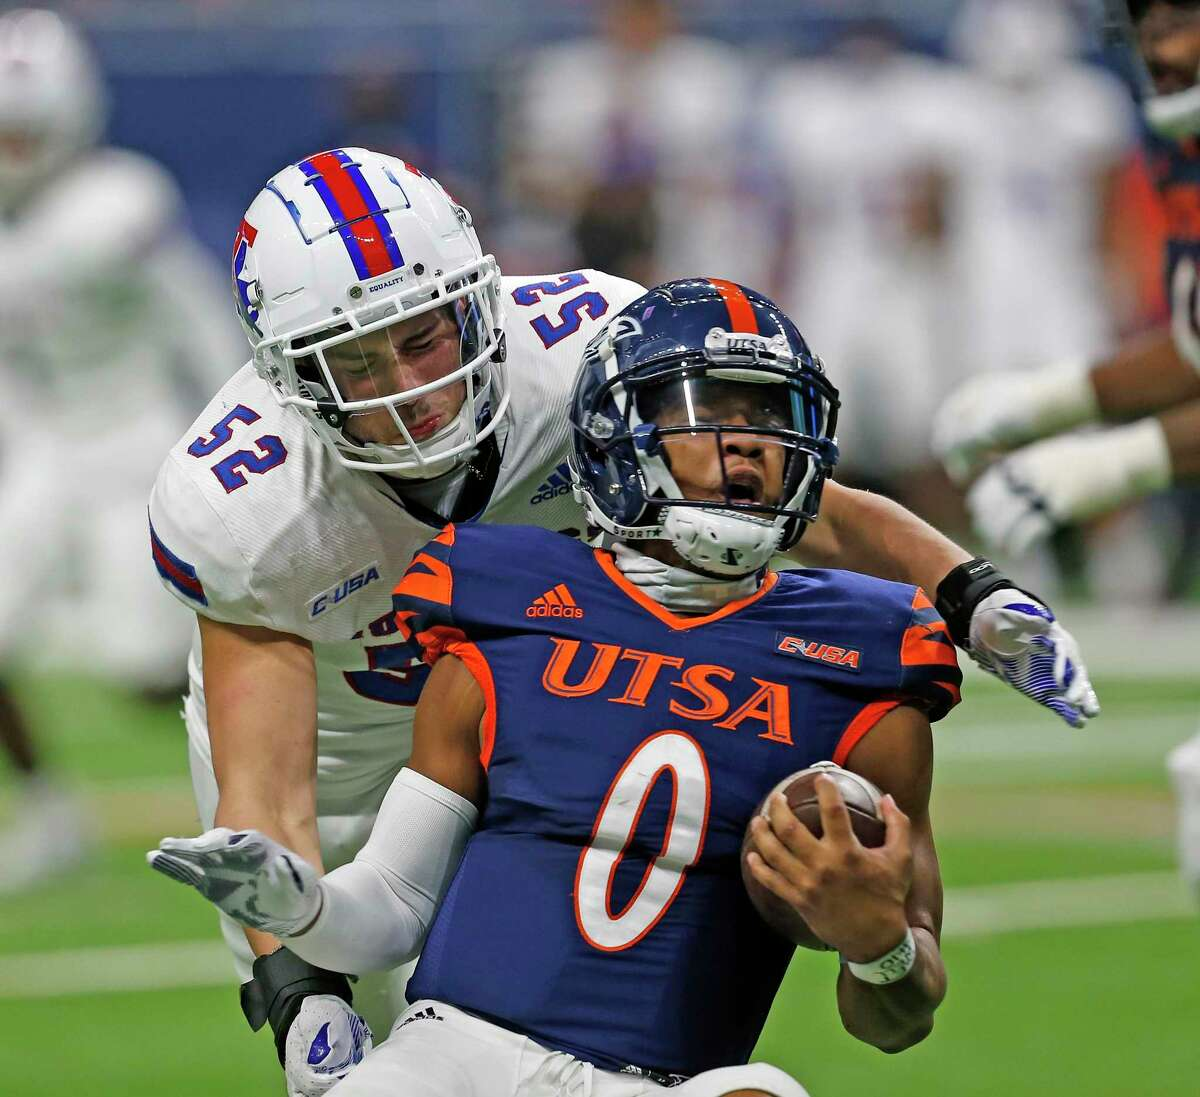 UTSA quarterback Frank Harris, getting sacked in last week's win, was sacked four times Saturday at Florida Atlantic.